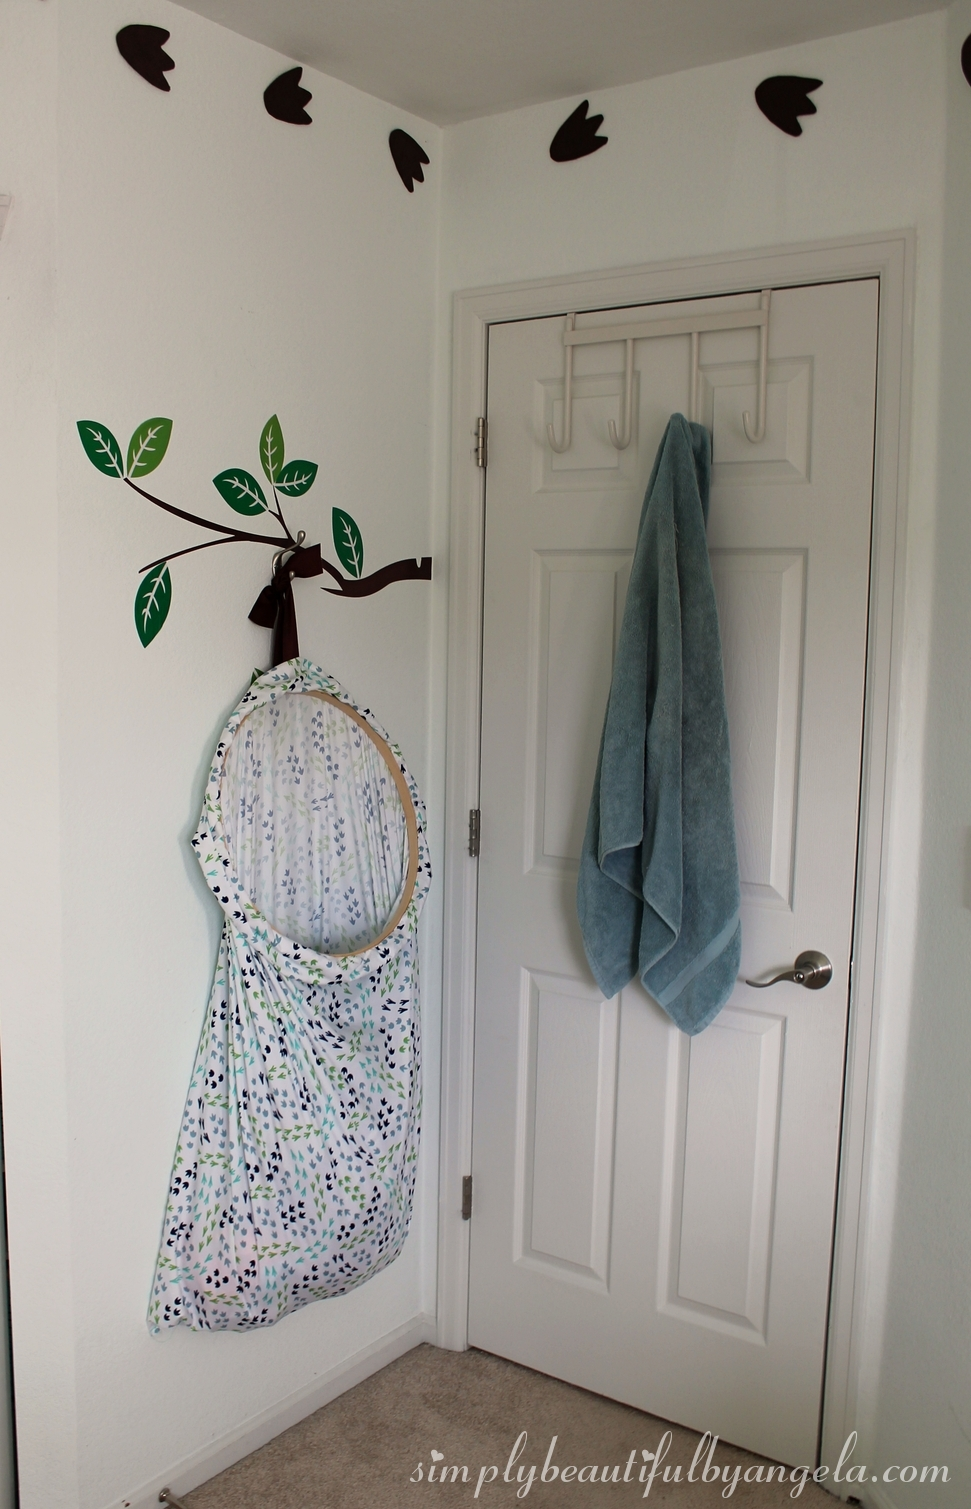 The Tree Branch Decal Was Actually Already There, But Once I Hung The Hamper  Up I Realized How Cute It Looked, Almost As If The Hamper Was Hanging From  The ...